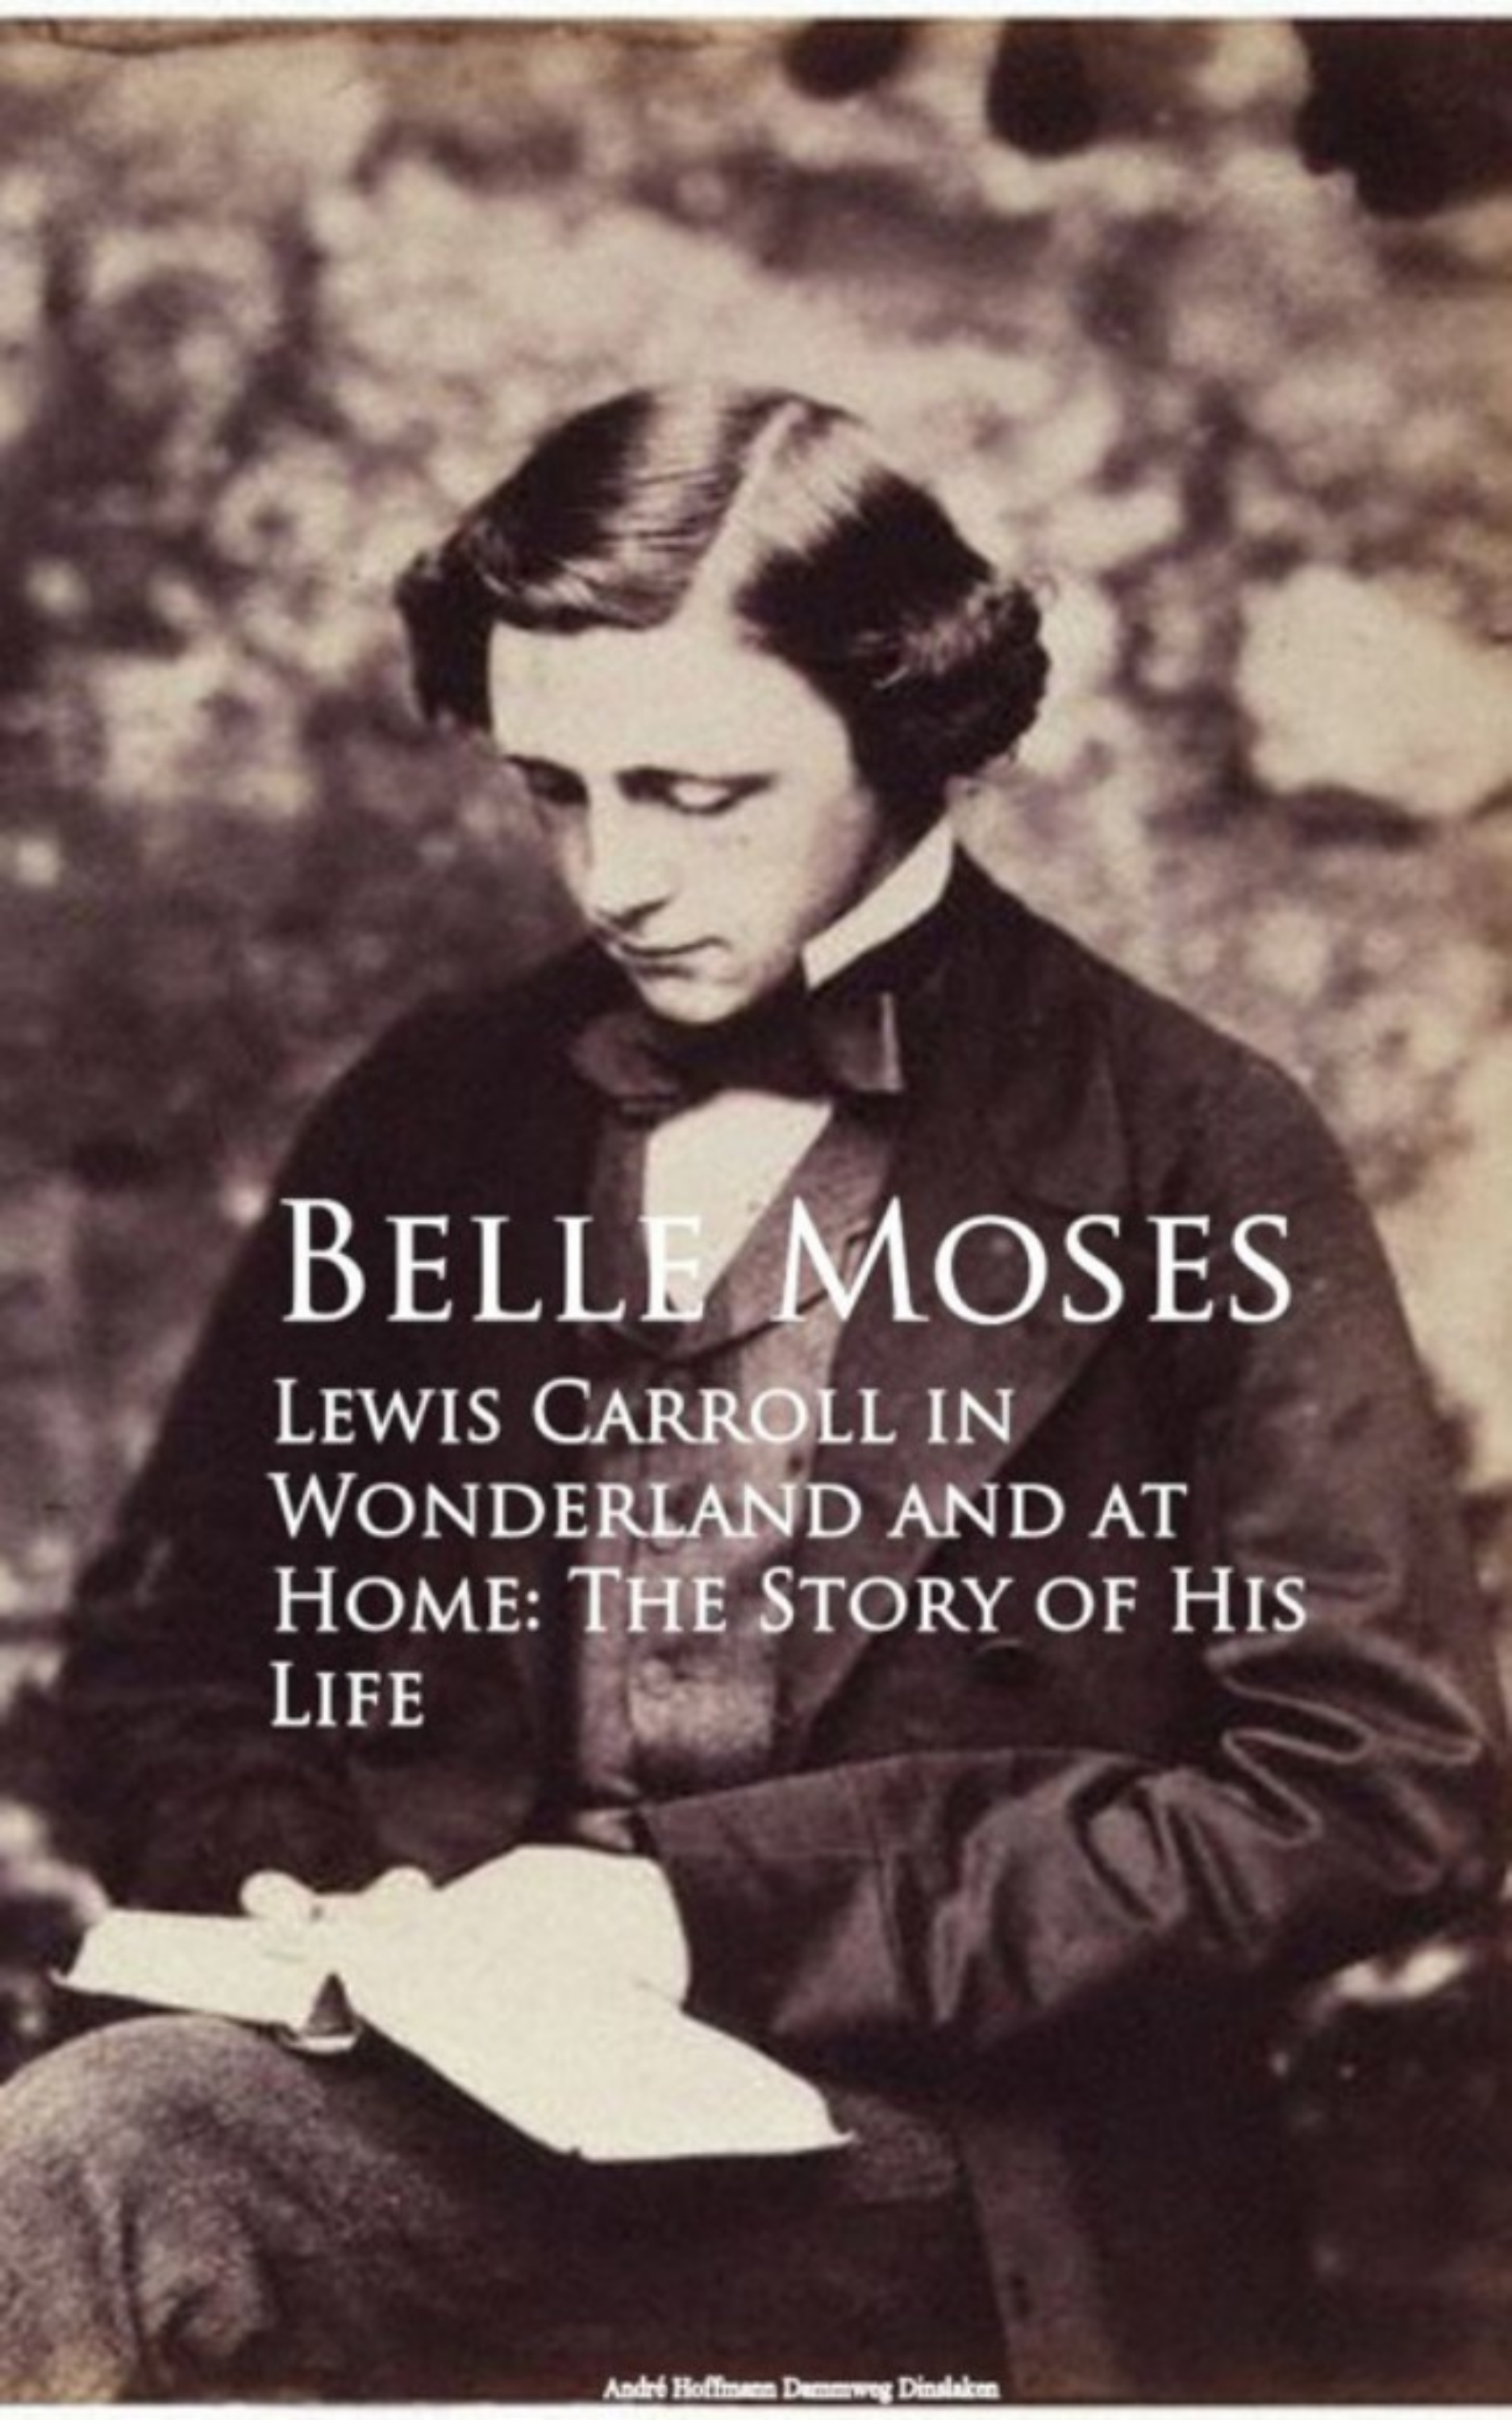 Belle Moses Lewis Carroll in Wonderland and at Home: The Story of His Life lewis carroll lewis carroll a tangled tale bruno s revenge and other stories